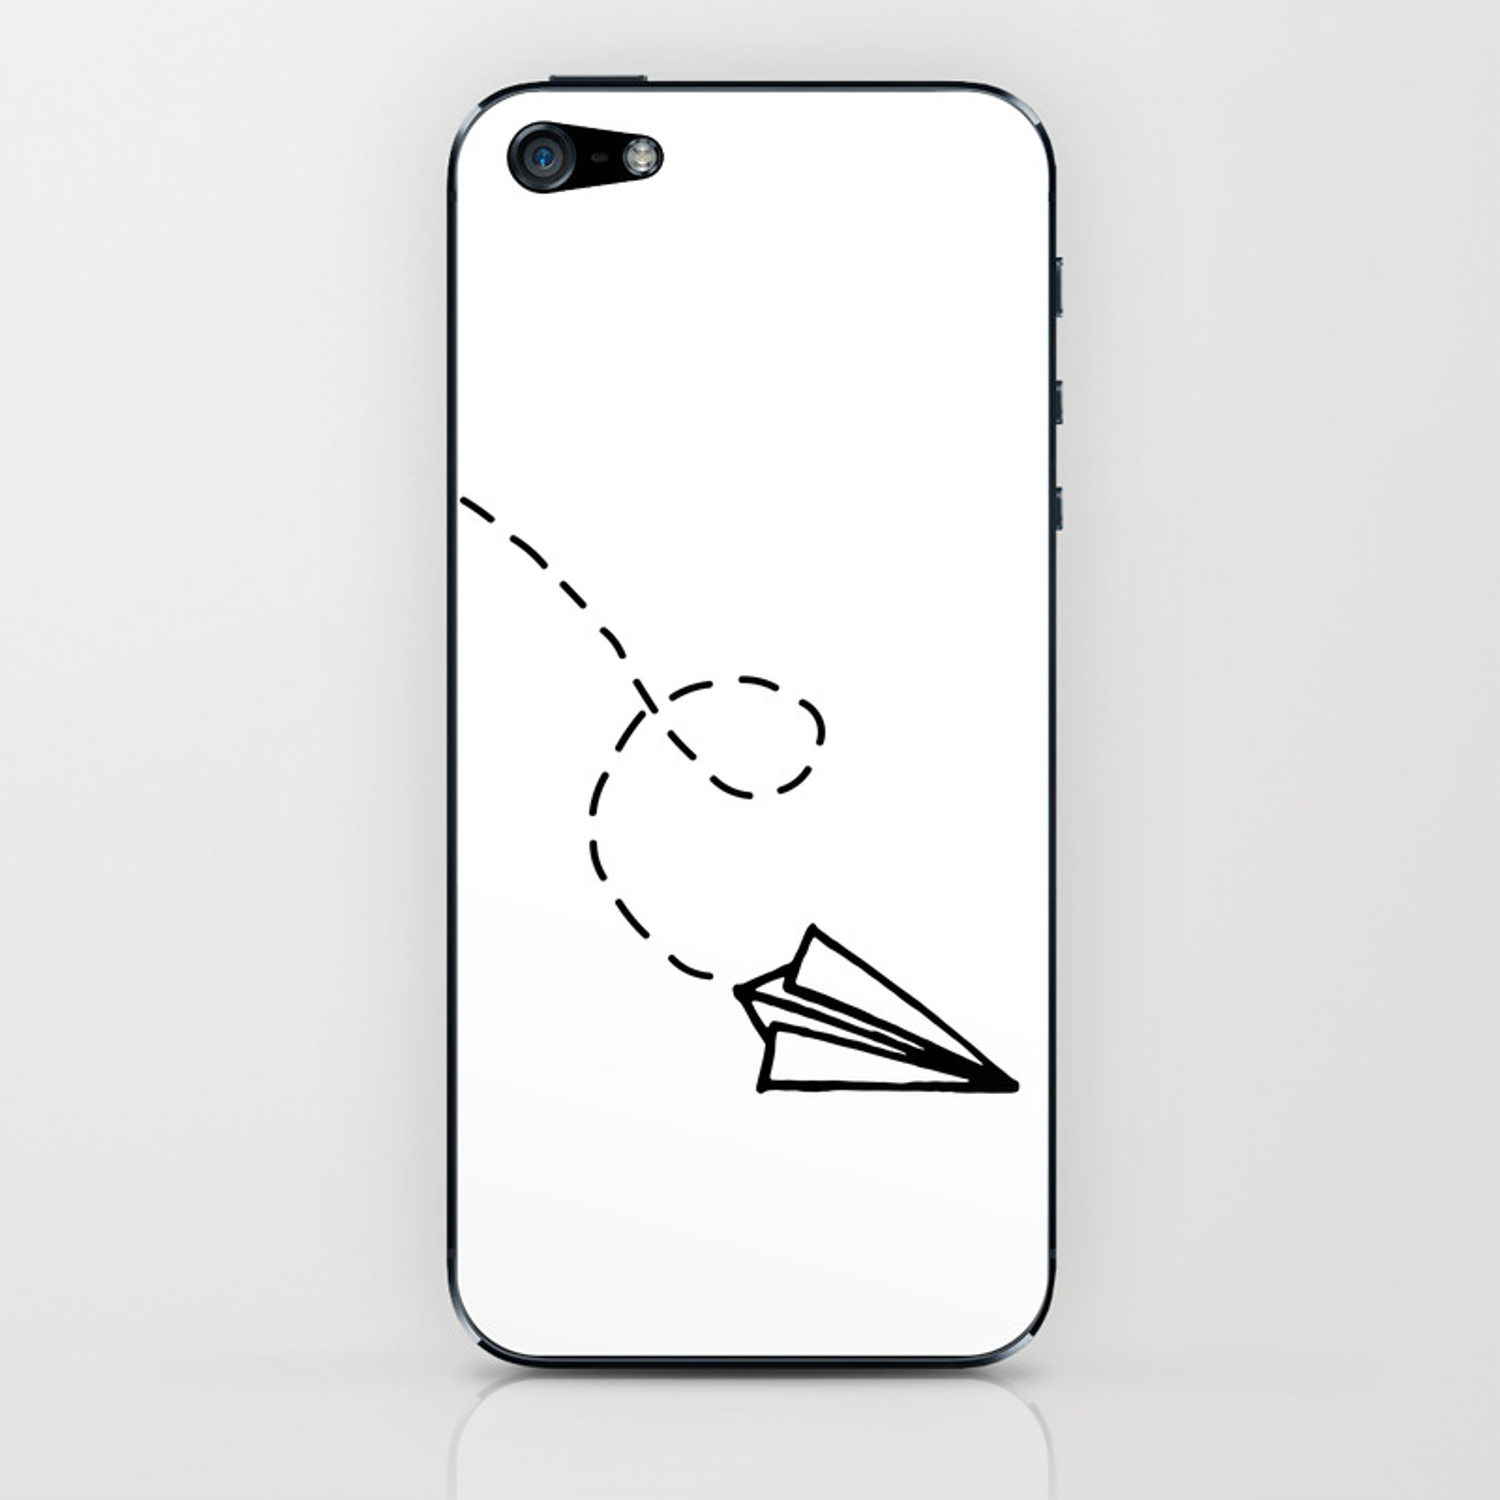 Send It Simple Paper Airplane Drawing Iphone Skin By